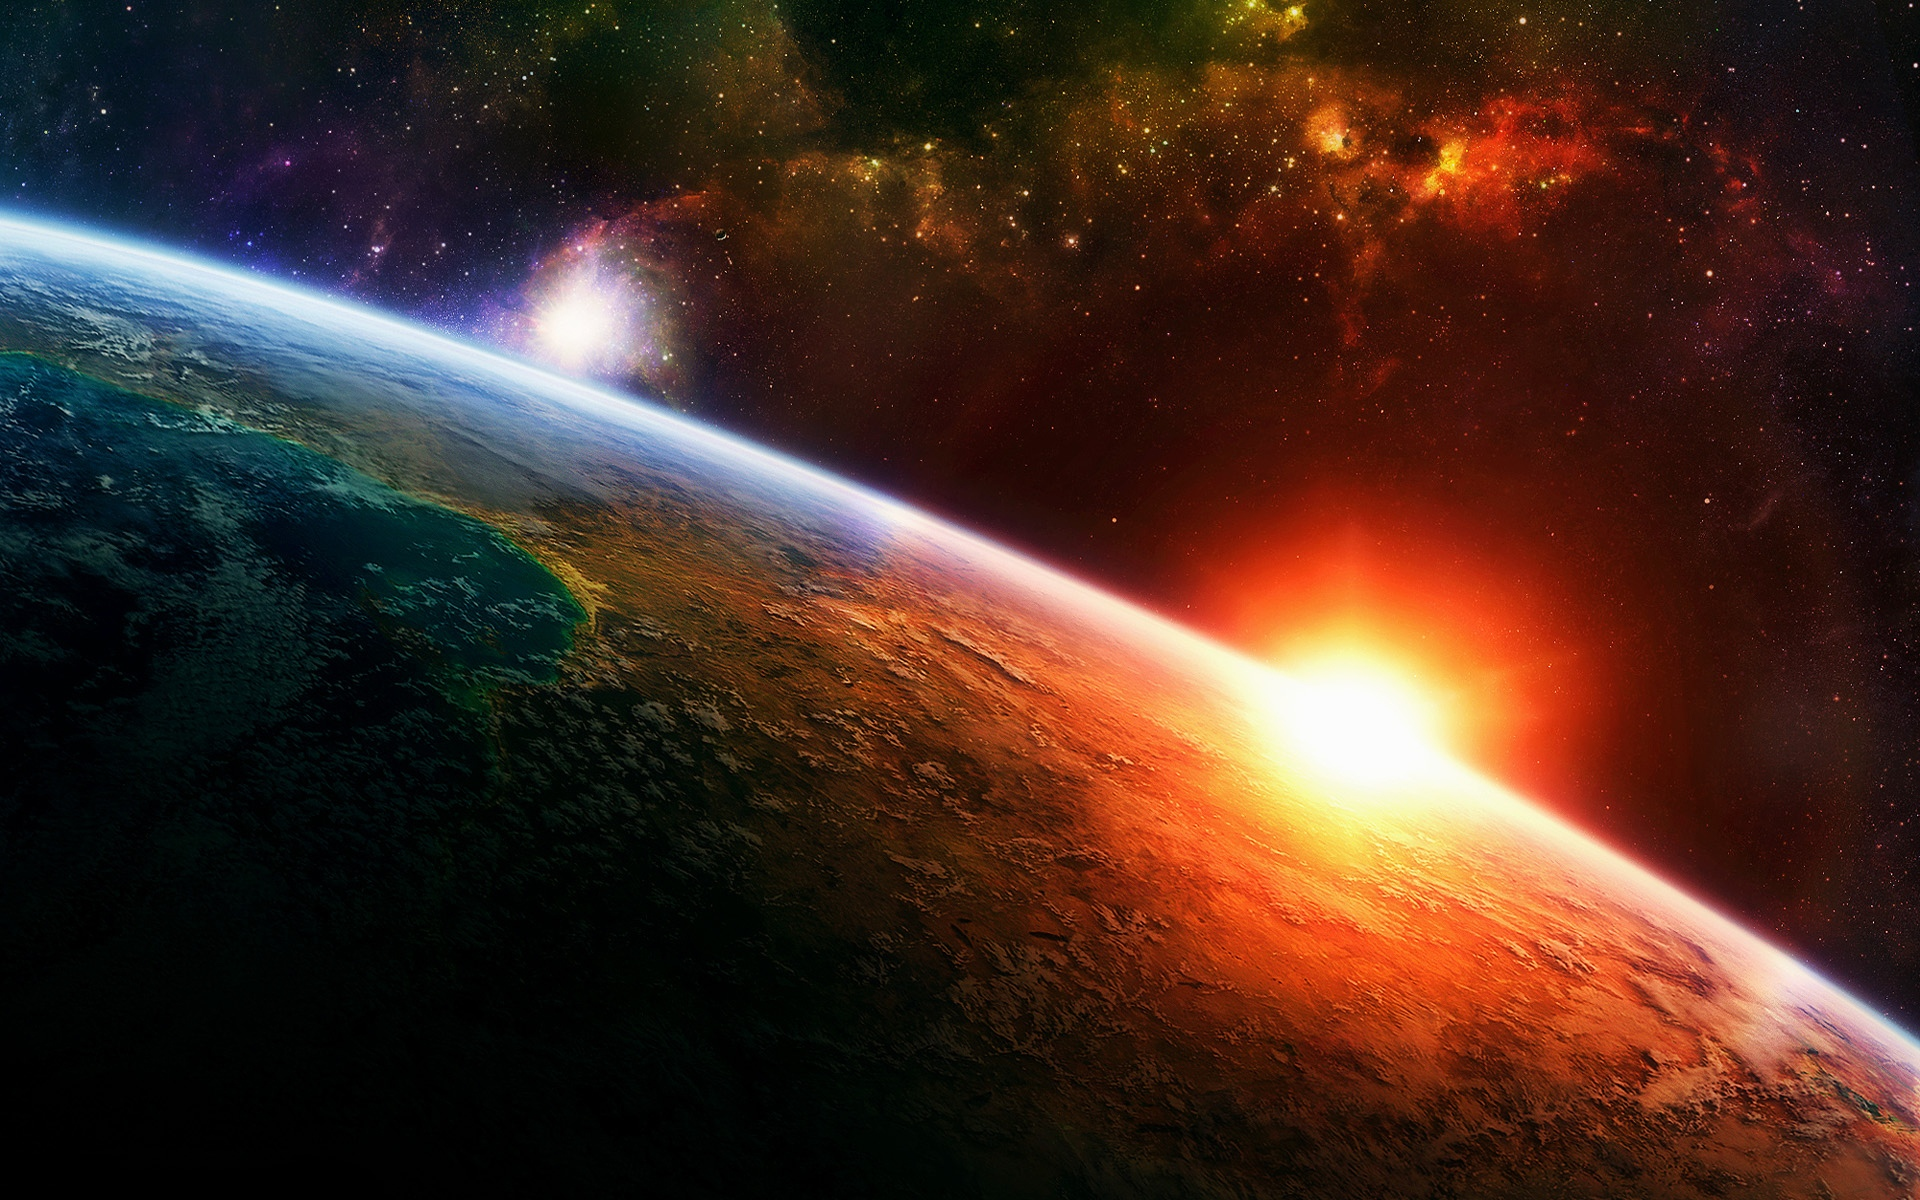 Image: http://www.desktopwallpaperhd.net/wallpapers/4/8/setting-cosmic-wallpapers-fantasy-land-happy-47096.jpg